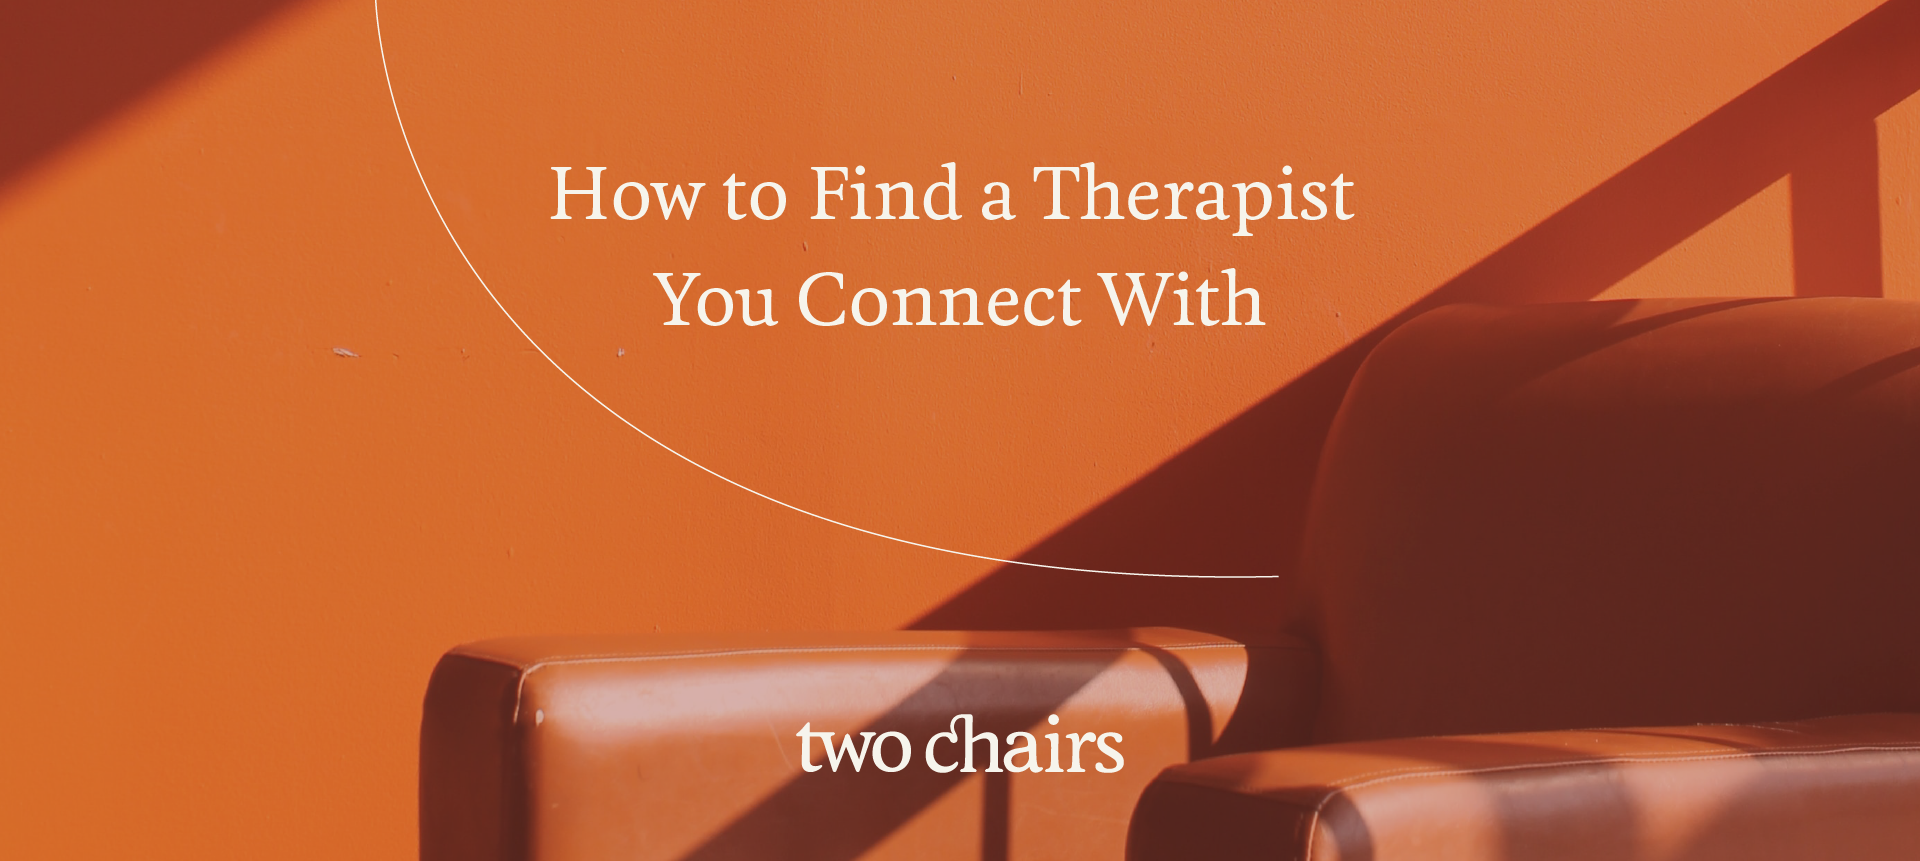 How to Find a Therapist You Connect With